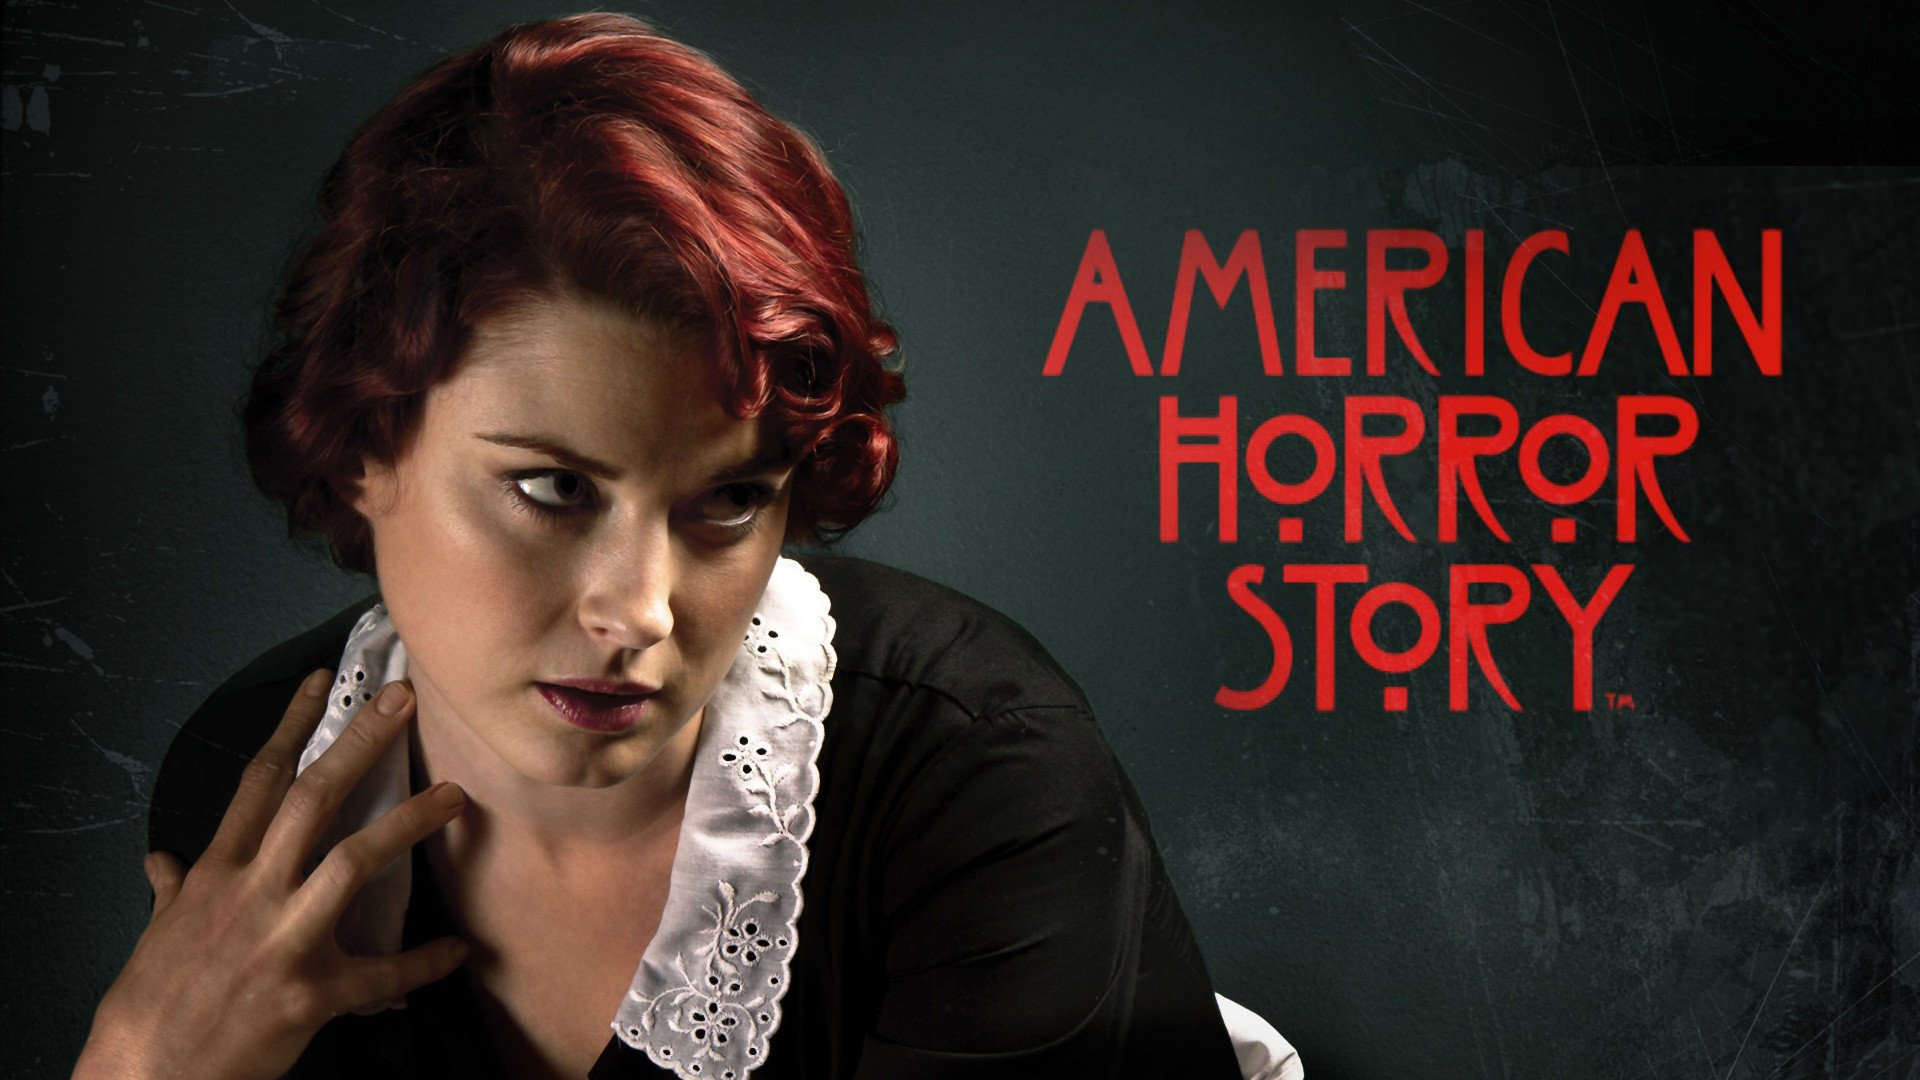 American horror story hd wallpaper background image 1920x1080 id 675306 wallpaper abyss - American horror story wallpaper ...